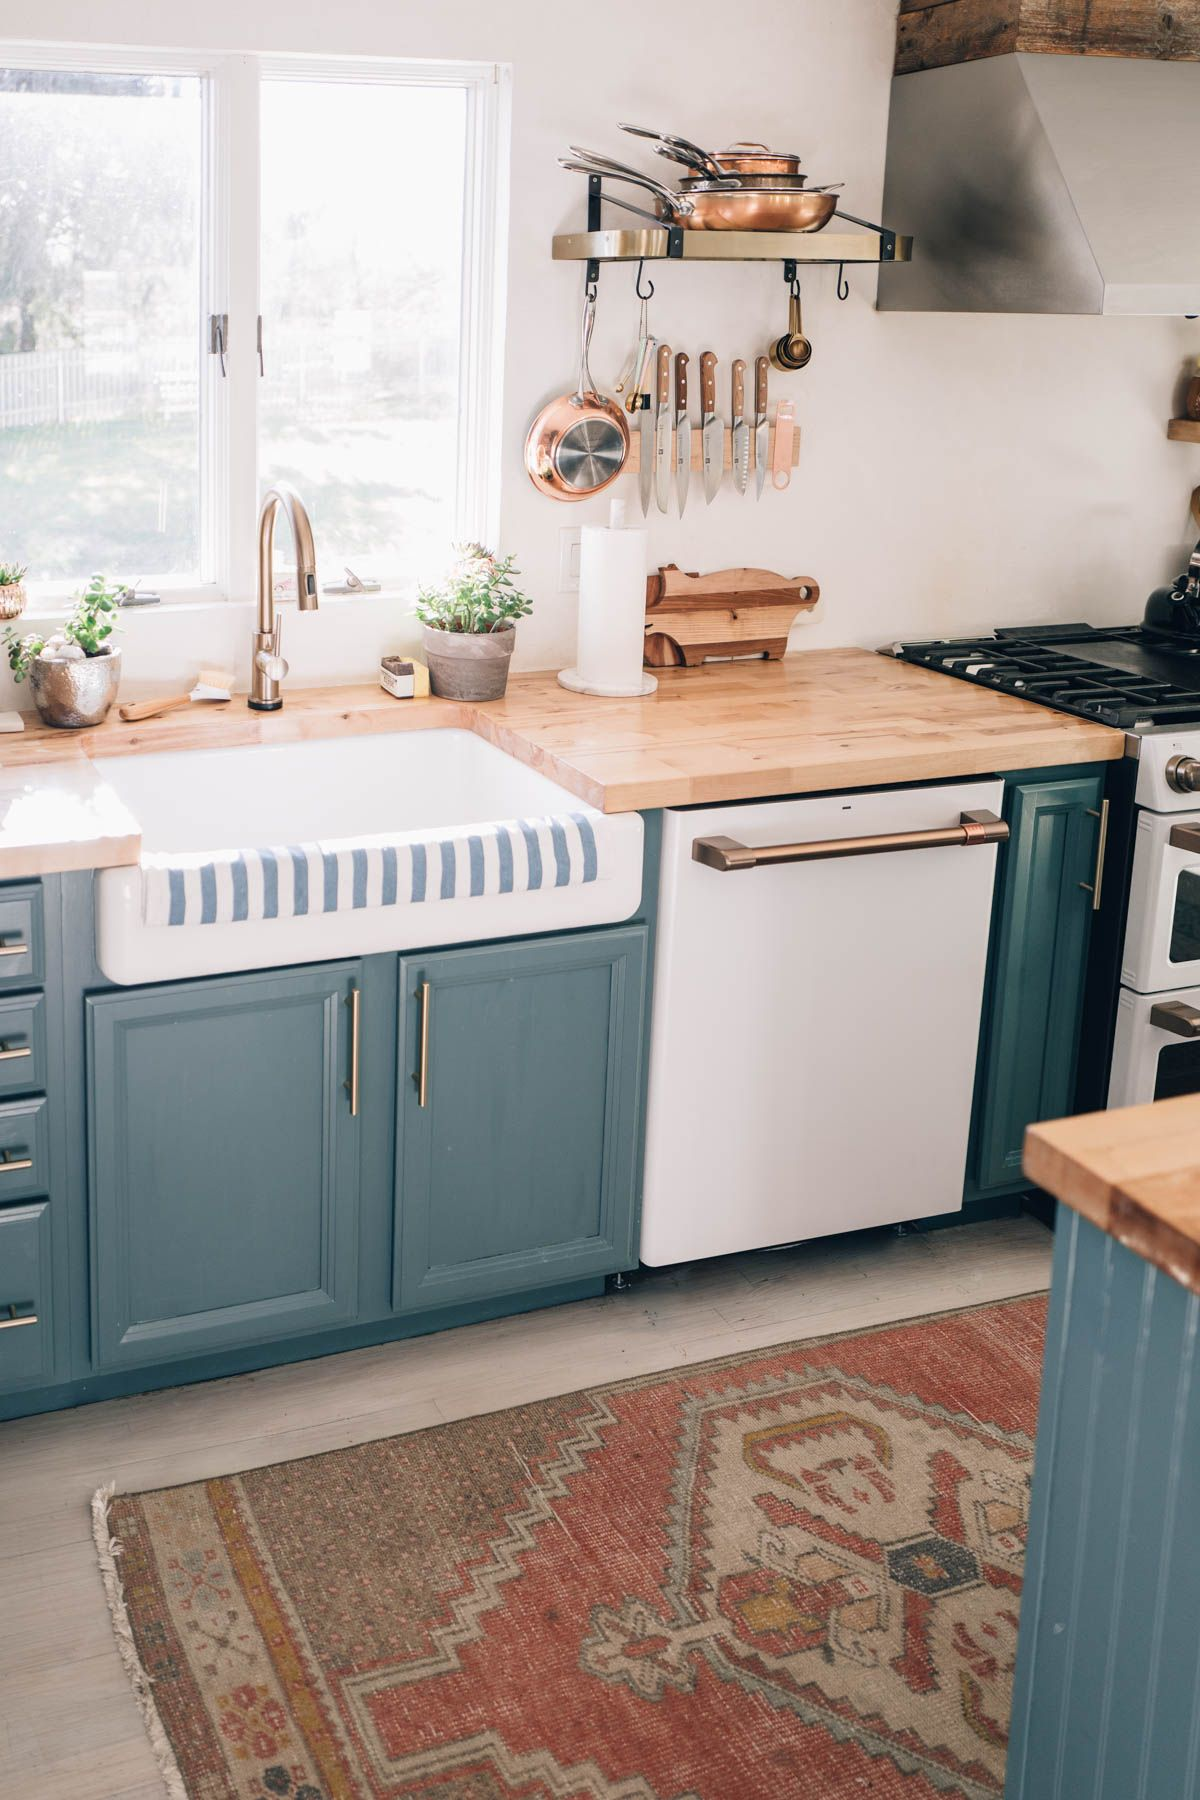 Customize your kitchen design with the cafeappliance